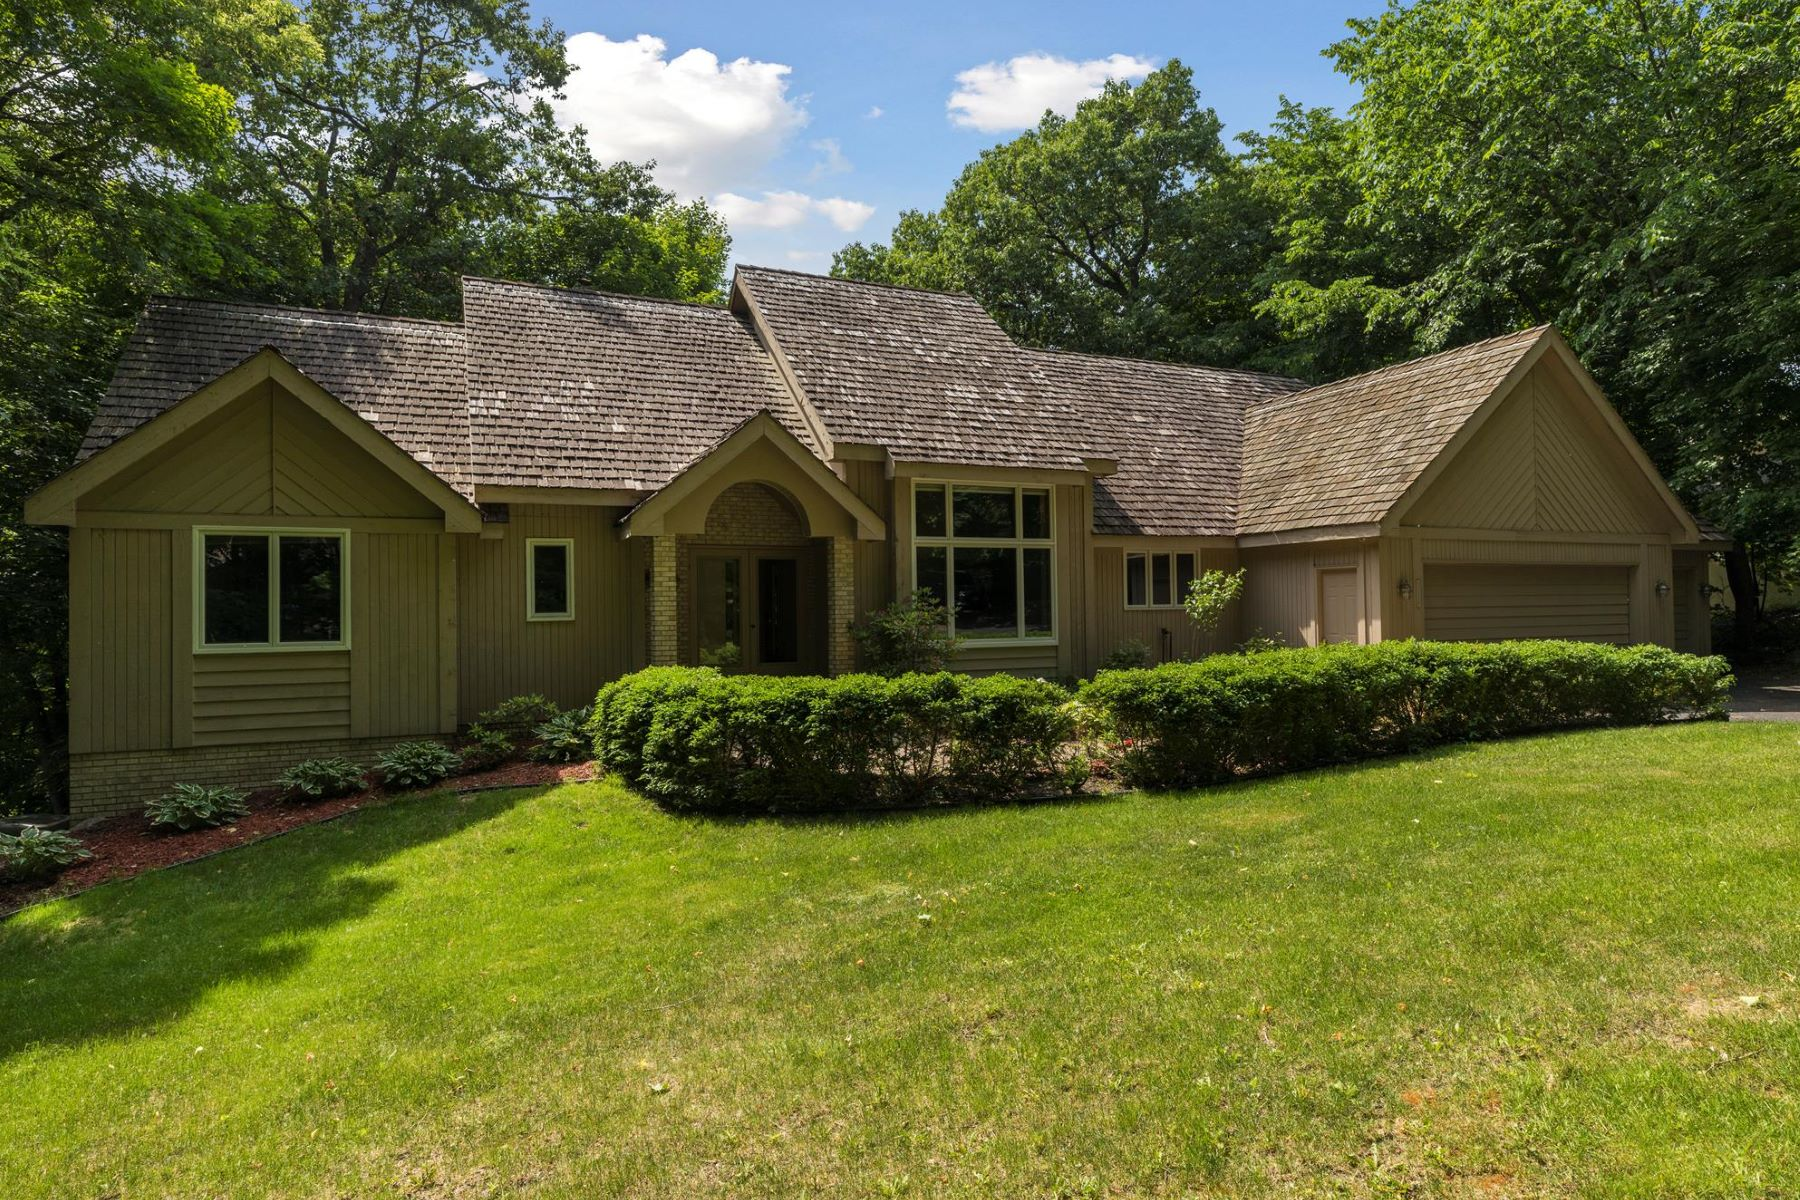 Single Family Home for Sale at 5250 Saint Albans Bay Road Shorewood, Minnesota, 55331 United States